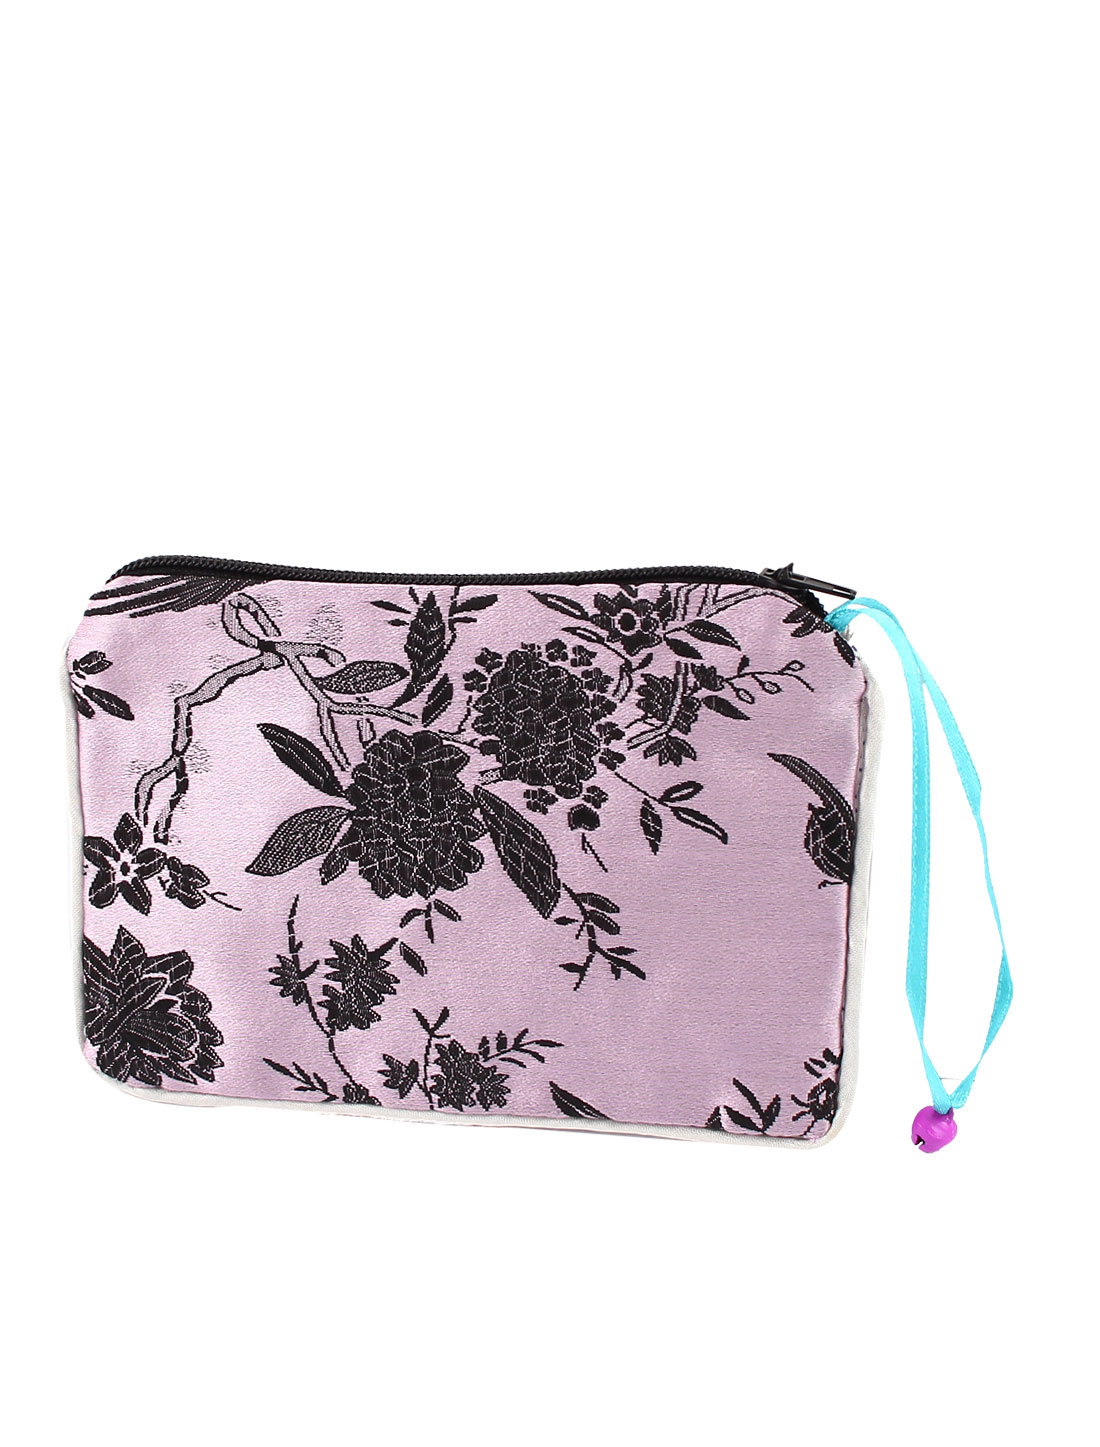 Women Brocade Rectangular Shaped Flower Pattern Zipper Closure Cash Coin Purse Bag Light Pink